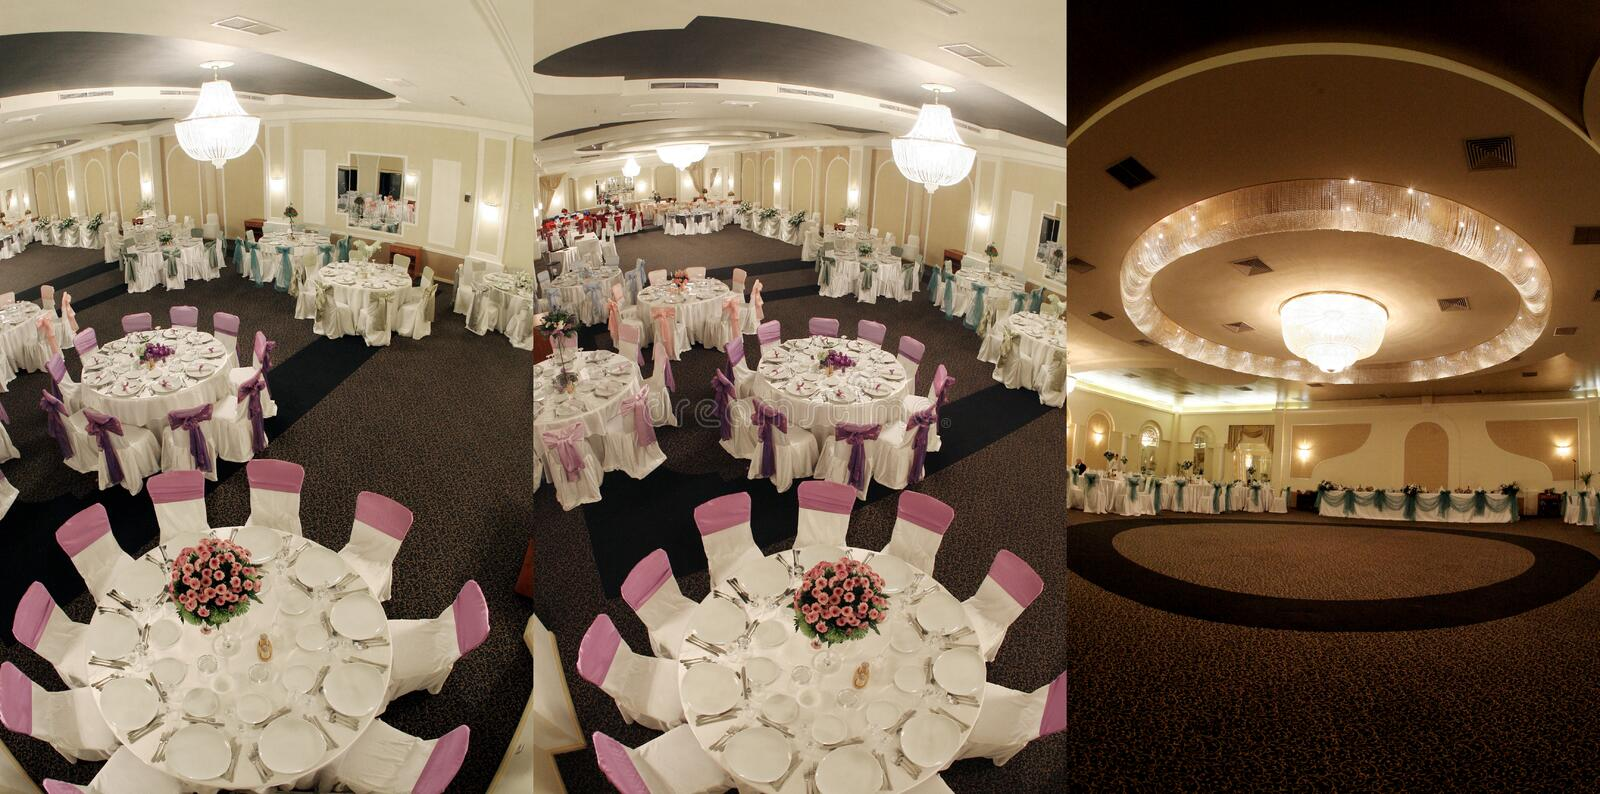 Tables seen from above, ready for wedding, screen split in three parts, collage royalty free stock photos